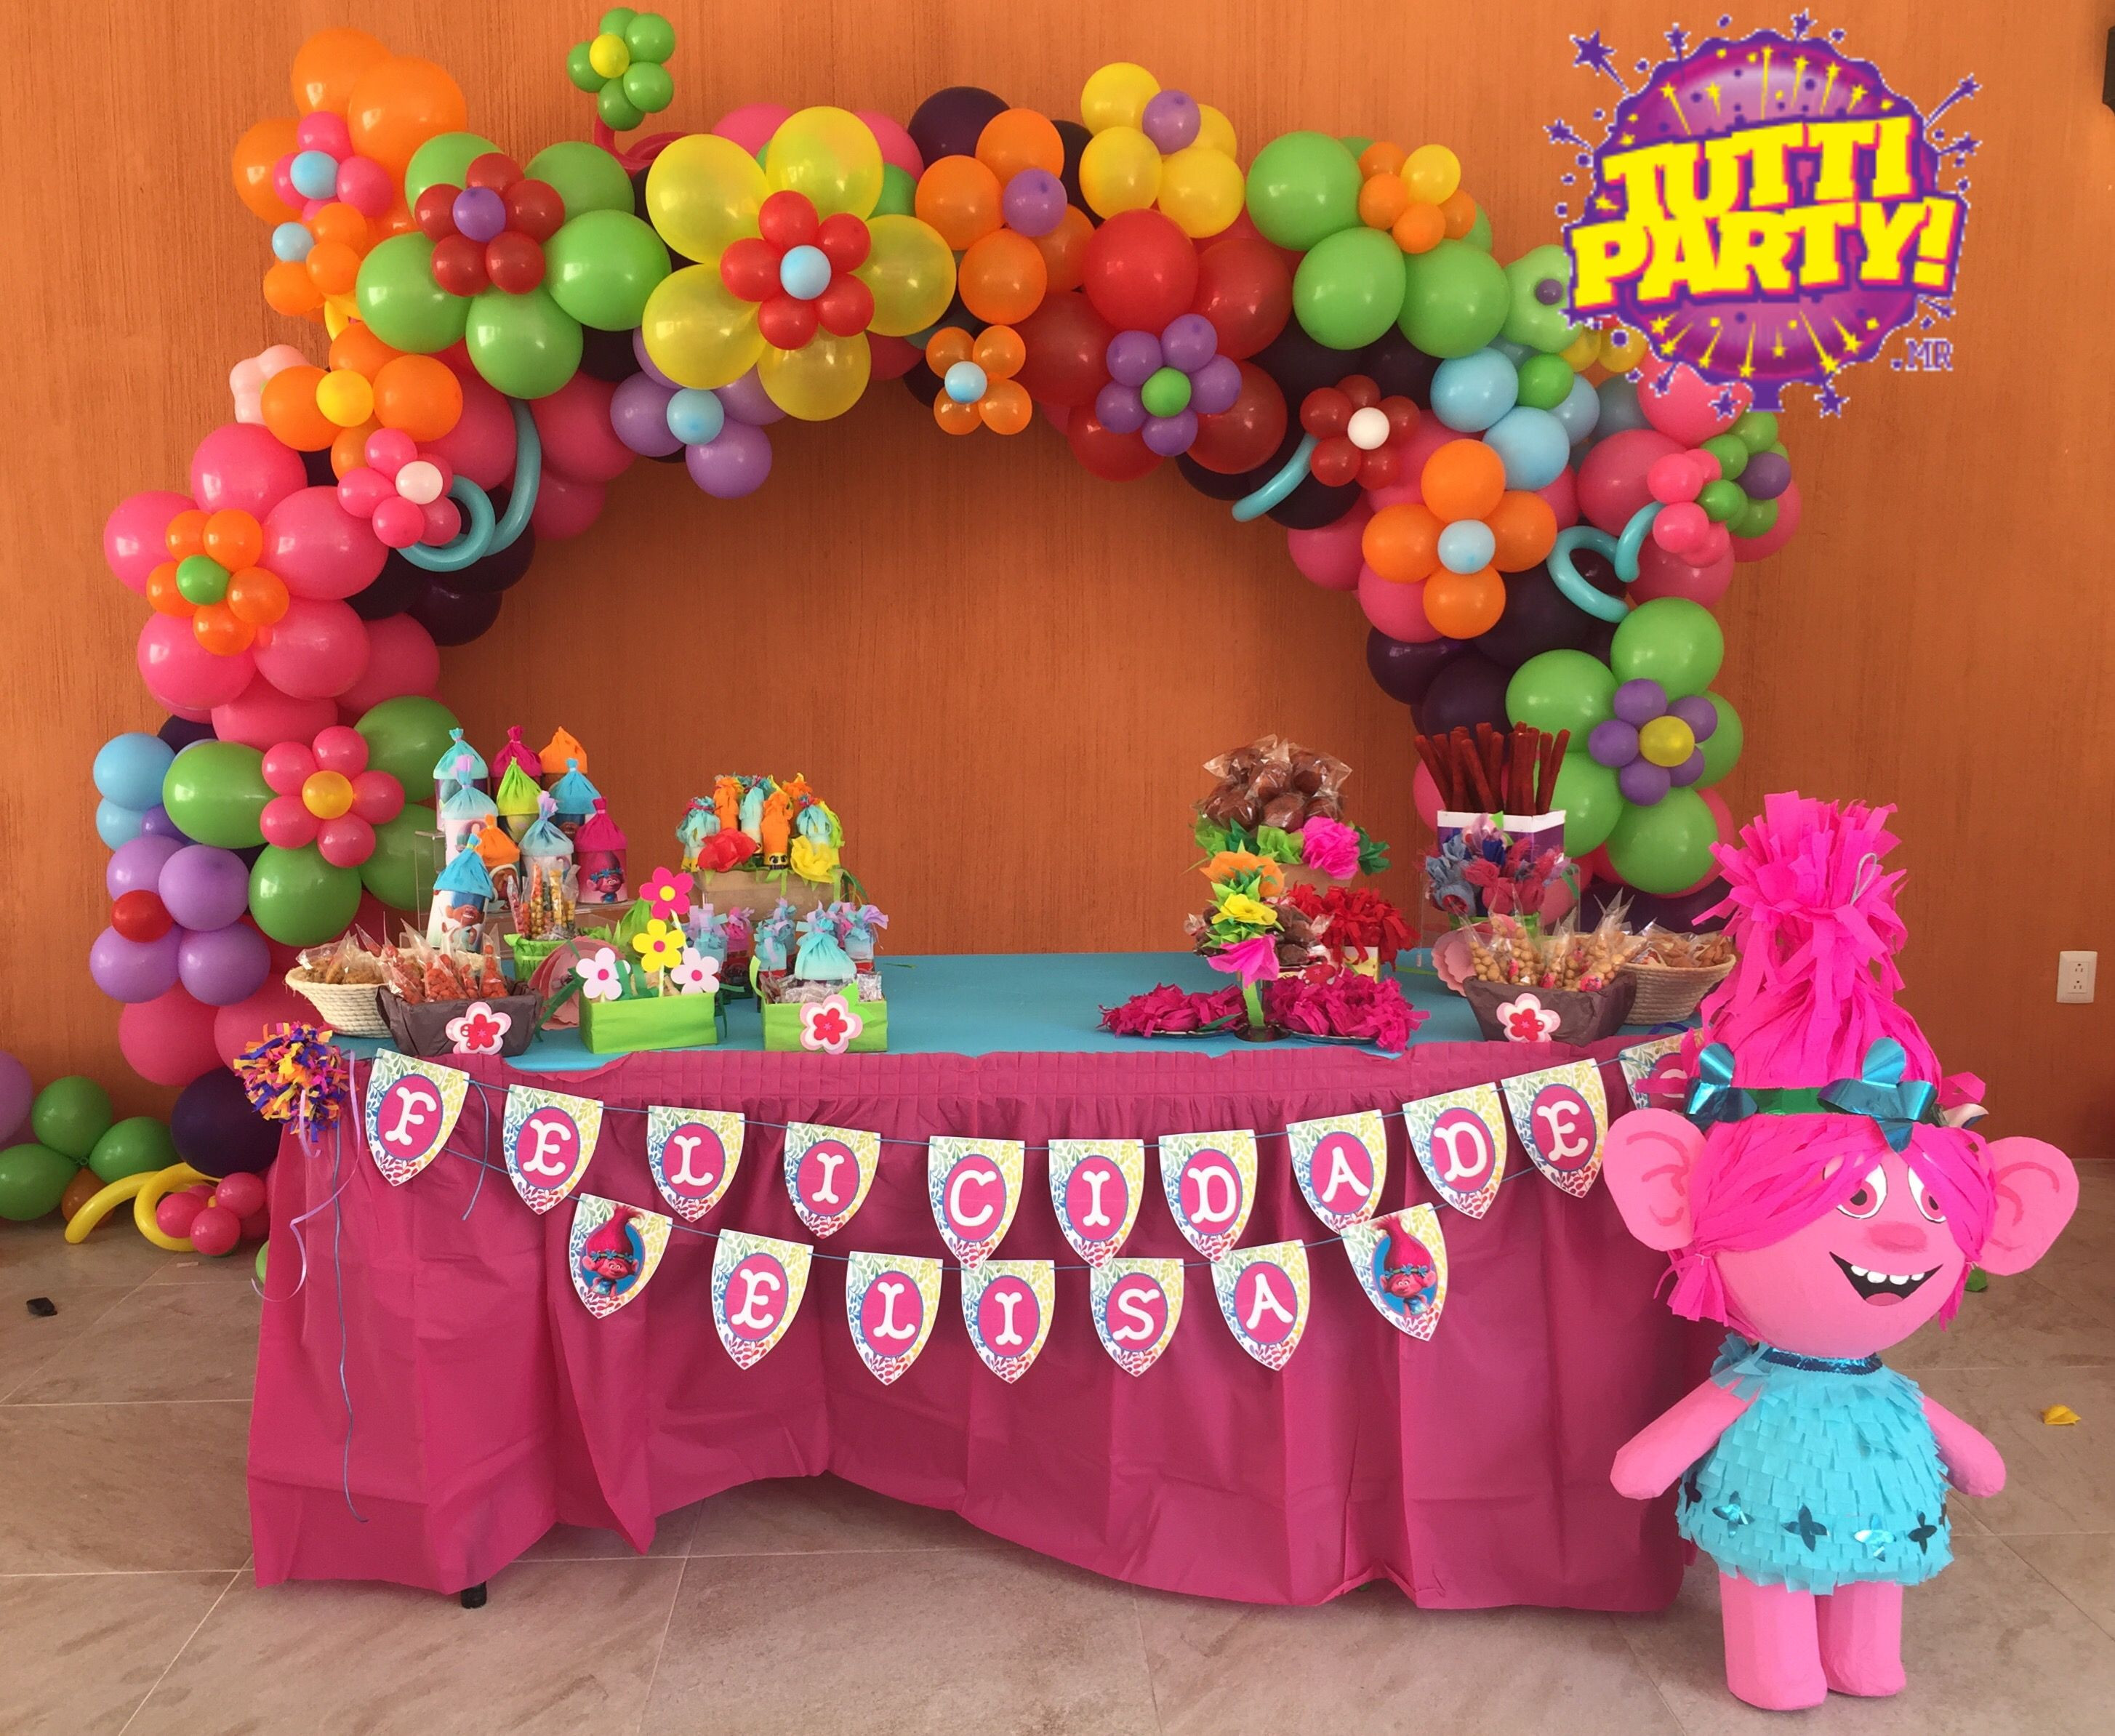 Best ideas about Troll Birthday Party . Save or Pin TROLLS PARTY IDEAS Now.